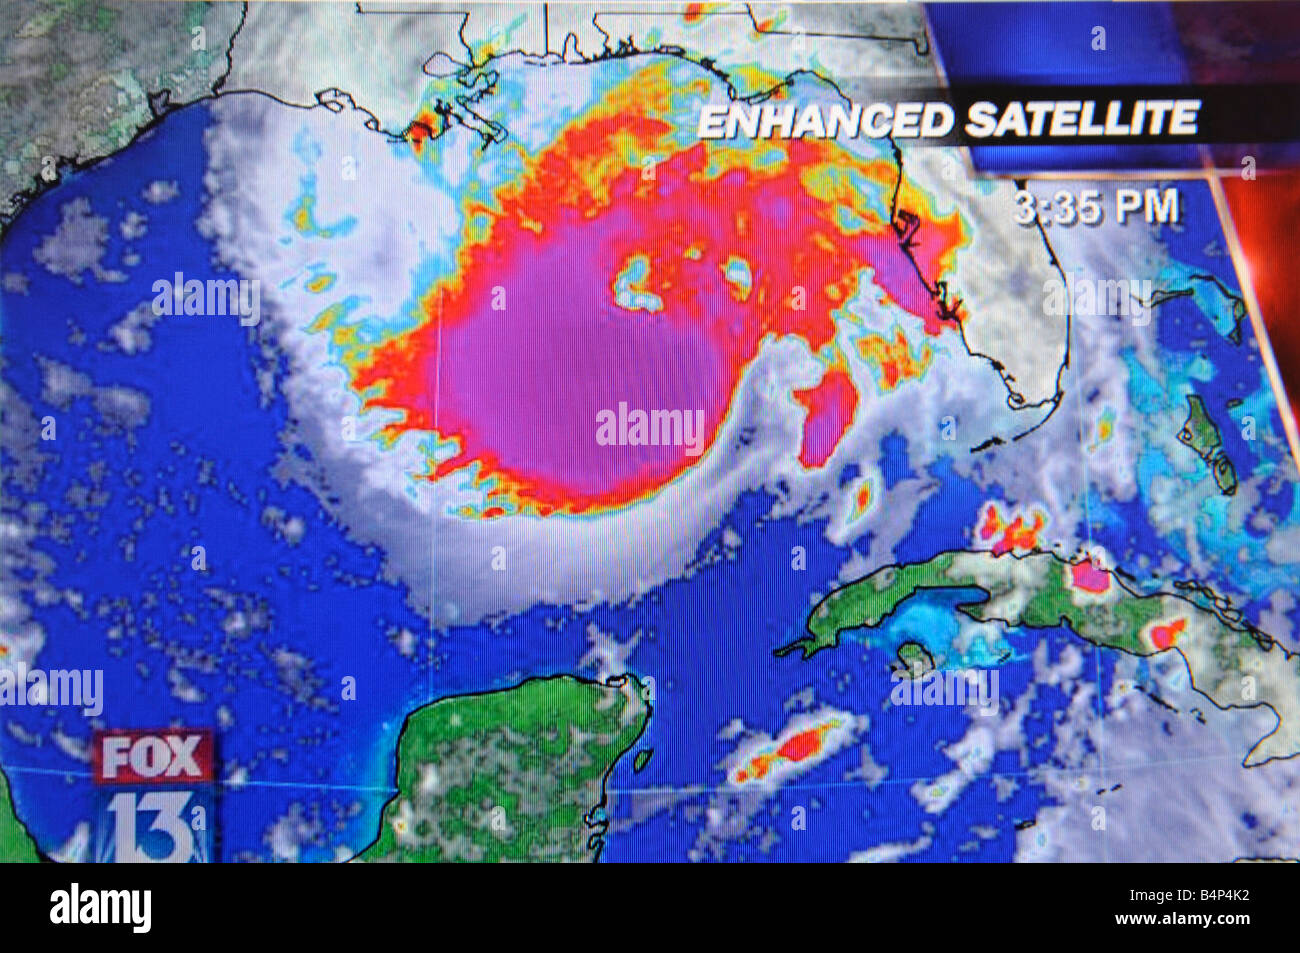 Hurricane Satellite Weather Map As Viewed On The Internet And On - World satellite weather map